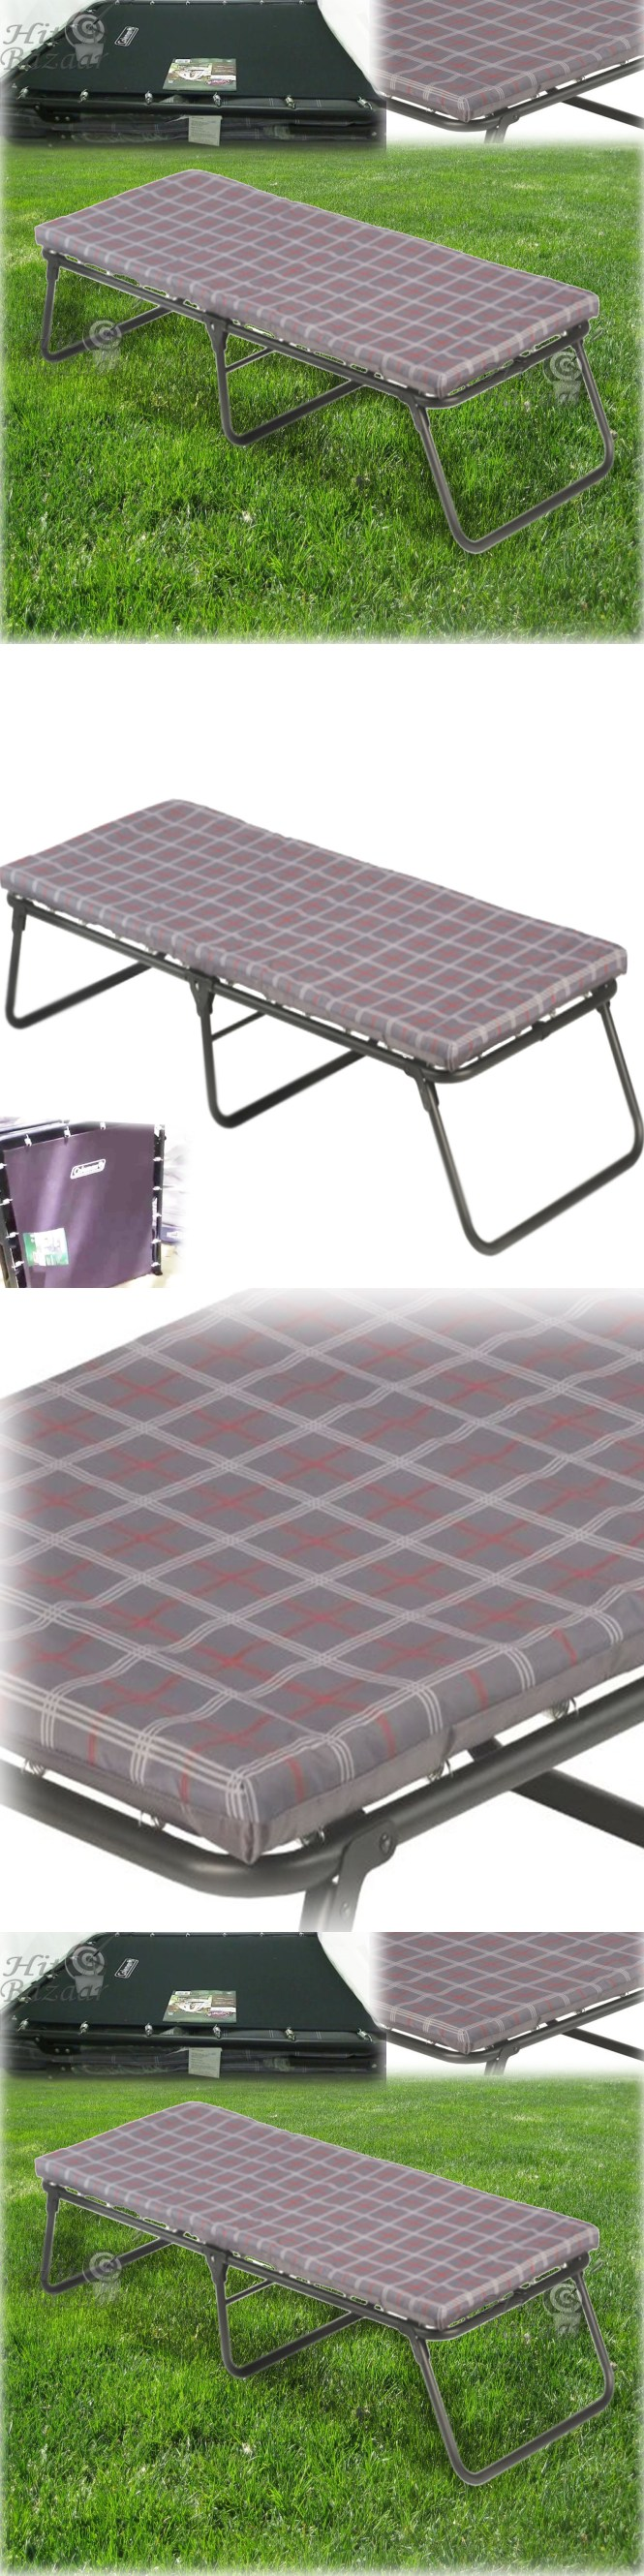 Cots 87099 Camping Cot Folding Bed Portable Sleeping Outdoor Foam Mattress Pad Sleepover